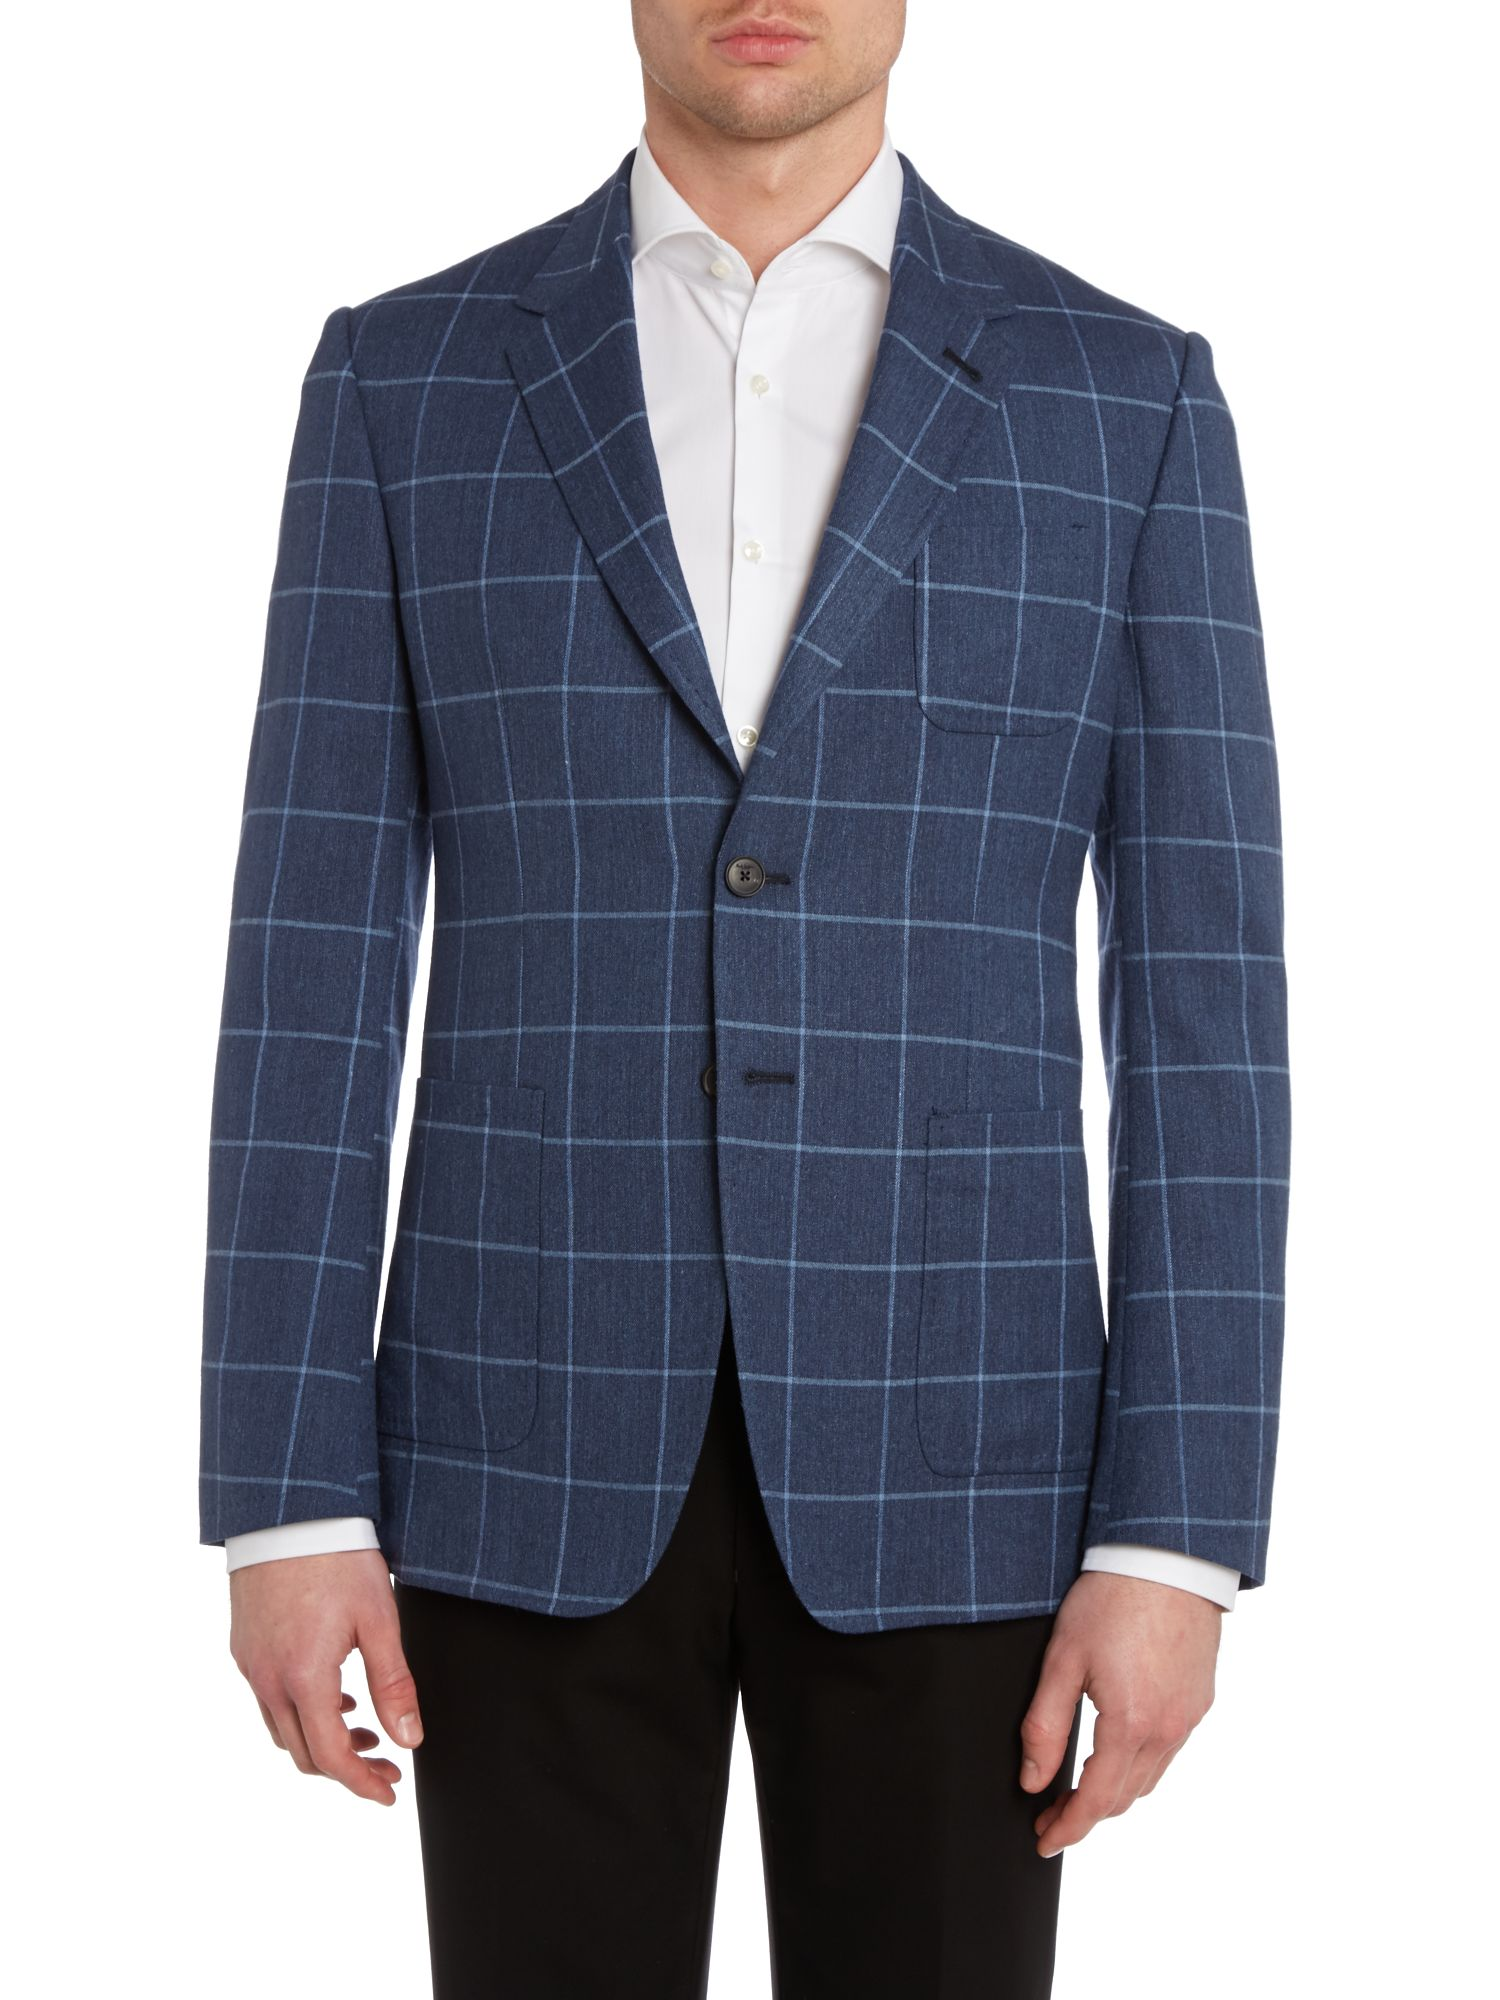 Windowpane check regular fit jacket